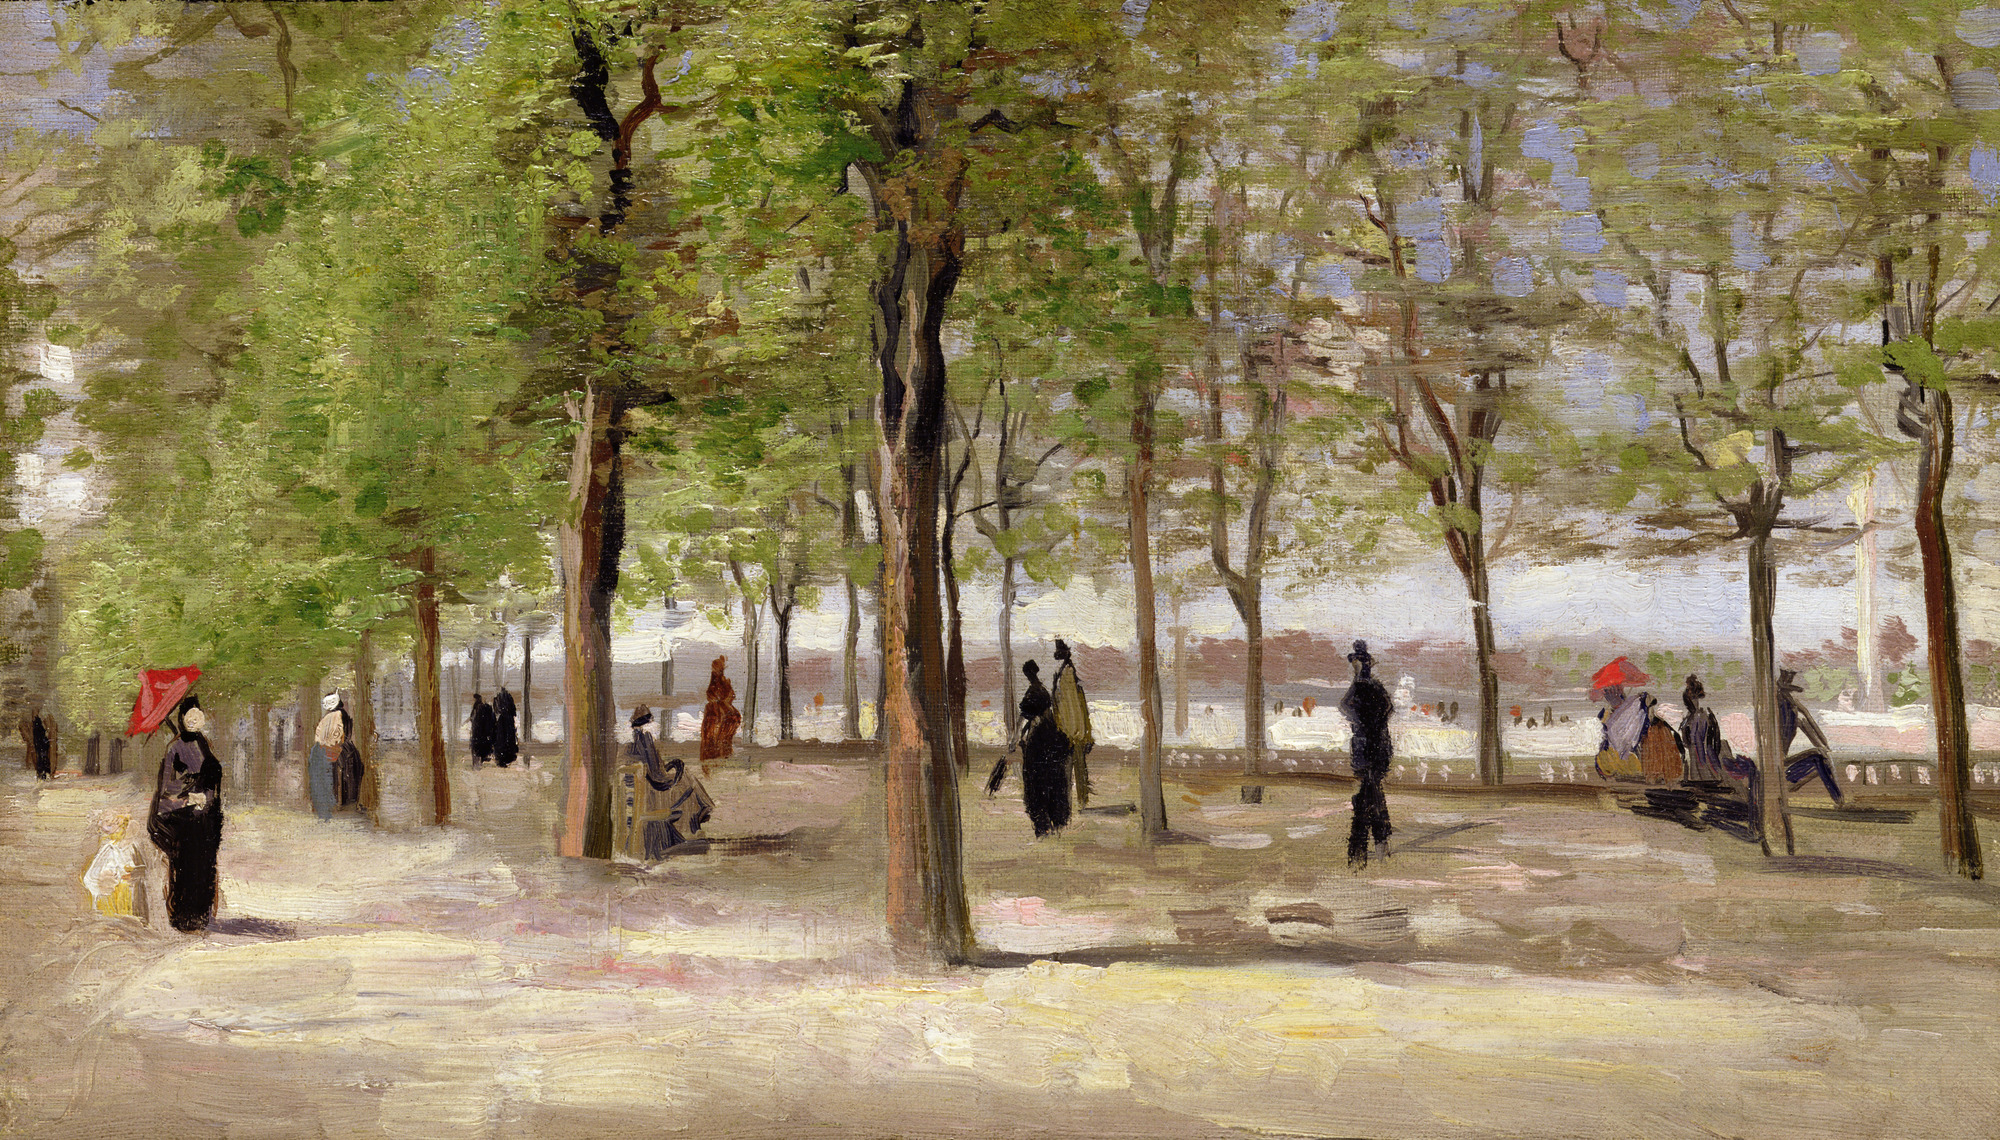 CLK340004 Terrace in the Luxembourg Garden, 1886 (oil on canvas) by Gogh, Vincent van (1853-90); 27.1x46.1 cm; Sterling & Francine Clark Art Institute, Williamstown, USA; Dutch,  out of copyright